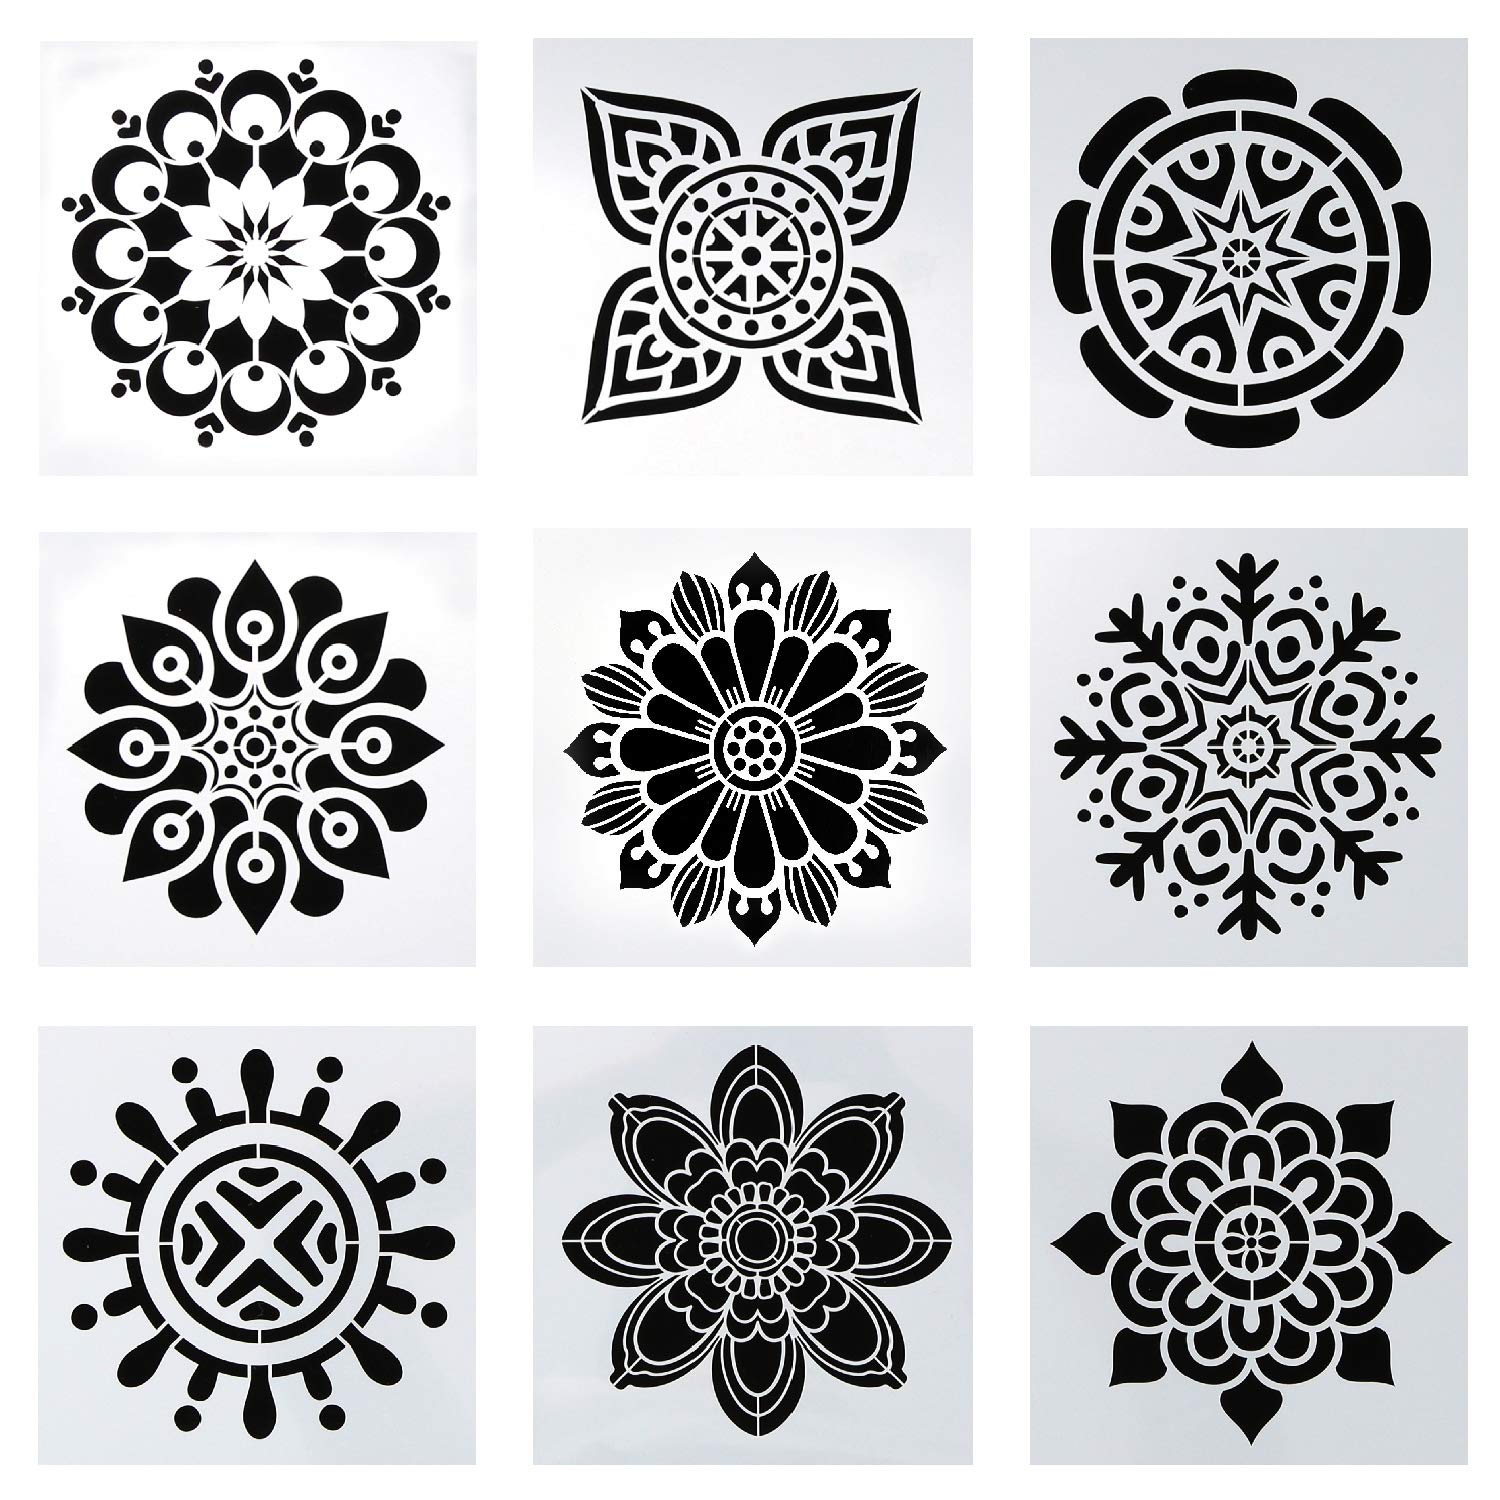 9 Pack Premium Quality Reusable Stencils (6x6 inch) Laser Cut Painting Stencil Painting Stencils for Painting on Wood,Airbrush and Walls Art DaBuLiu